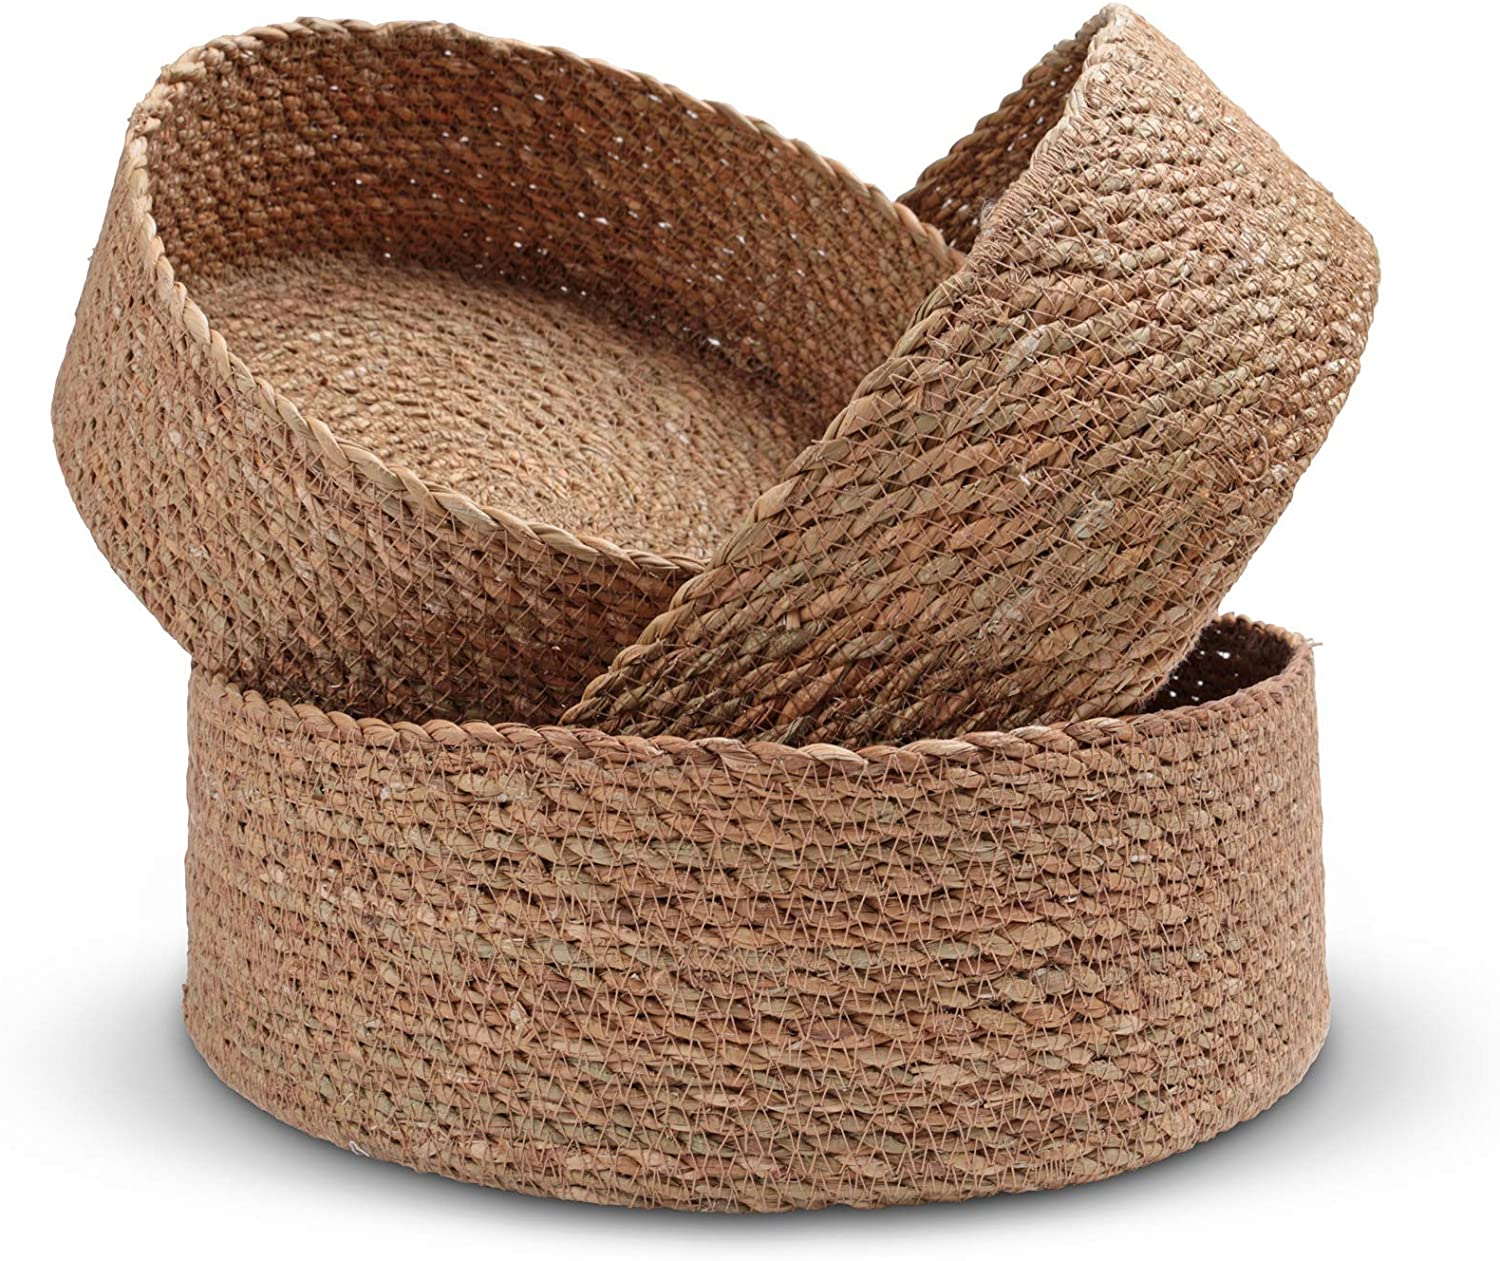 Woven Round Seagrass Basket Tray Set for Home - 3 Decorative Storage Baskets for Organizing and Storage – Sustainable, Eco-Friendly Nesting Baskets with Cotton Dust Bag for Coastal and Beach Decor (10